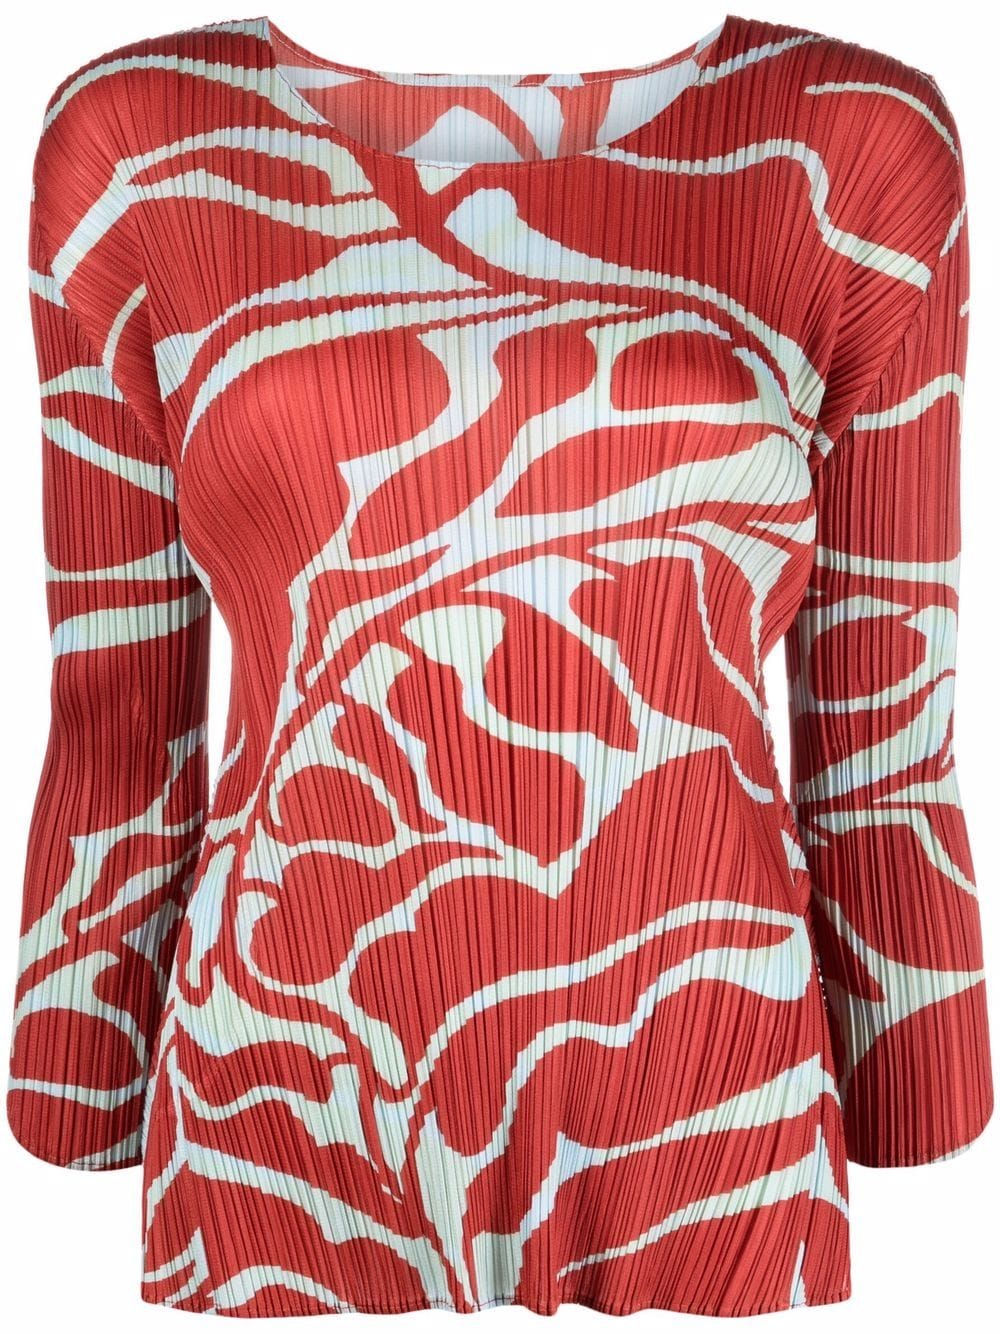 Picture of Issey Miyake Pleats Please   Leaf-Print Pleated Blouse